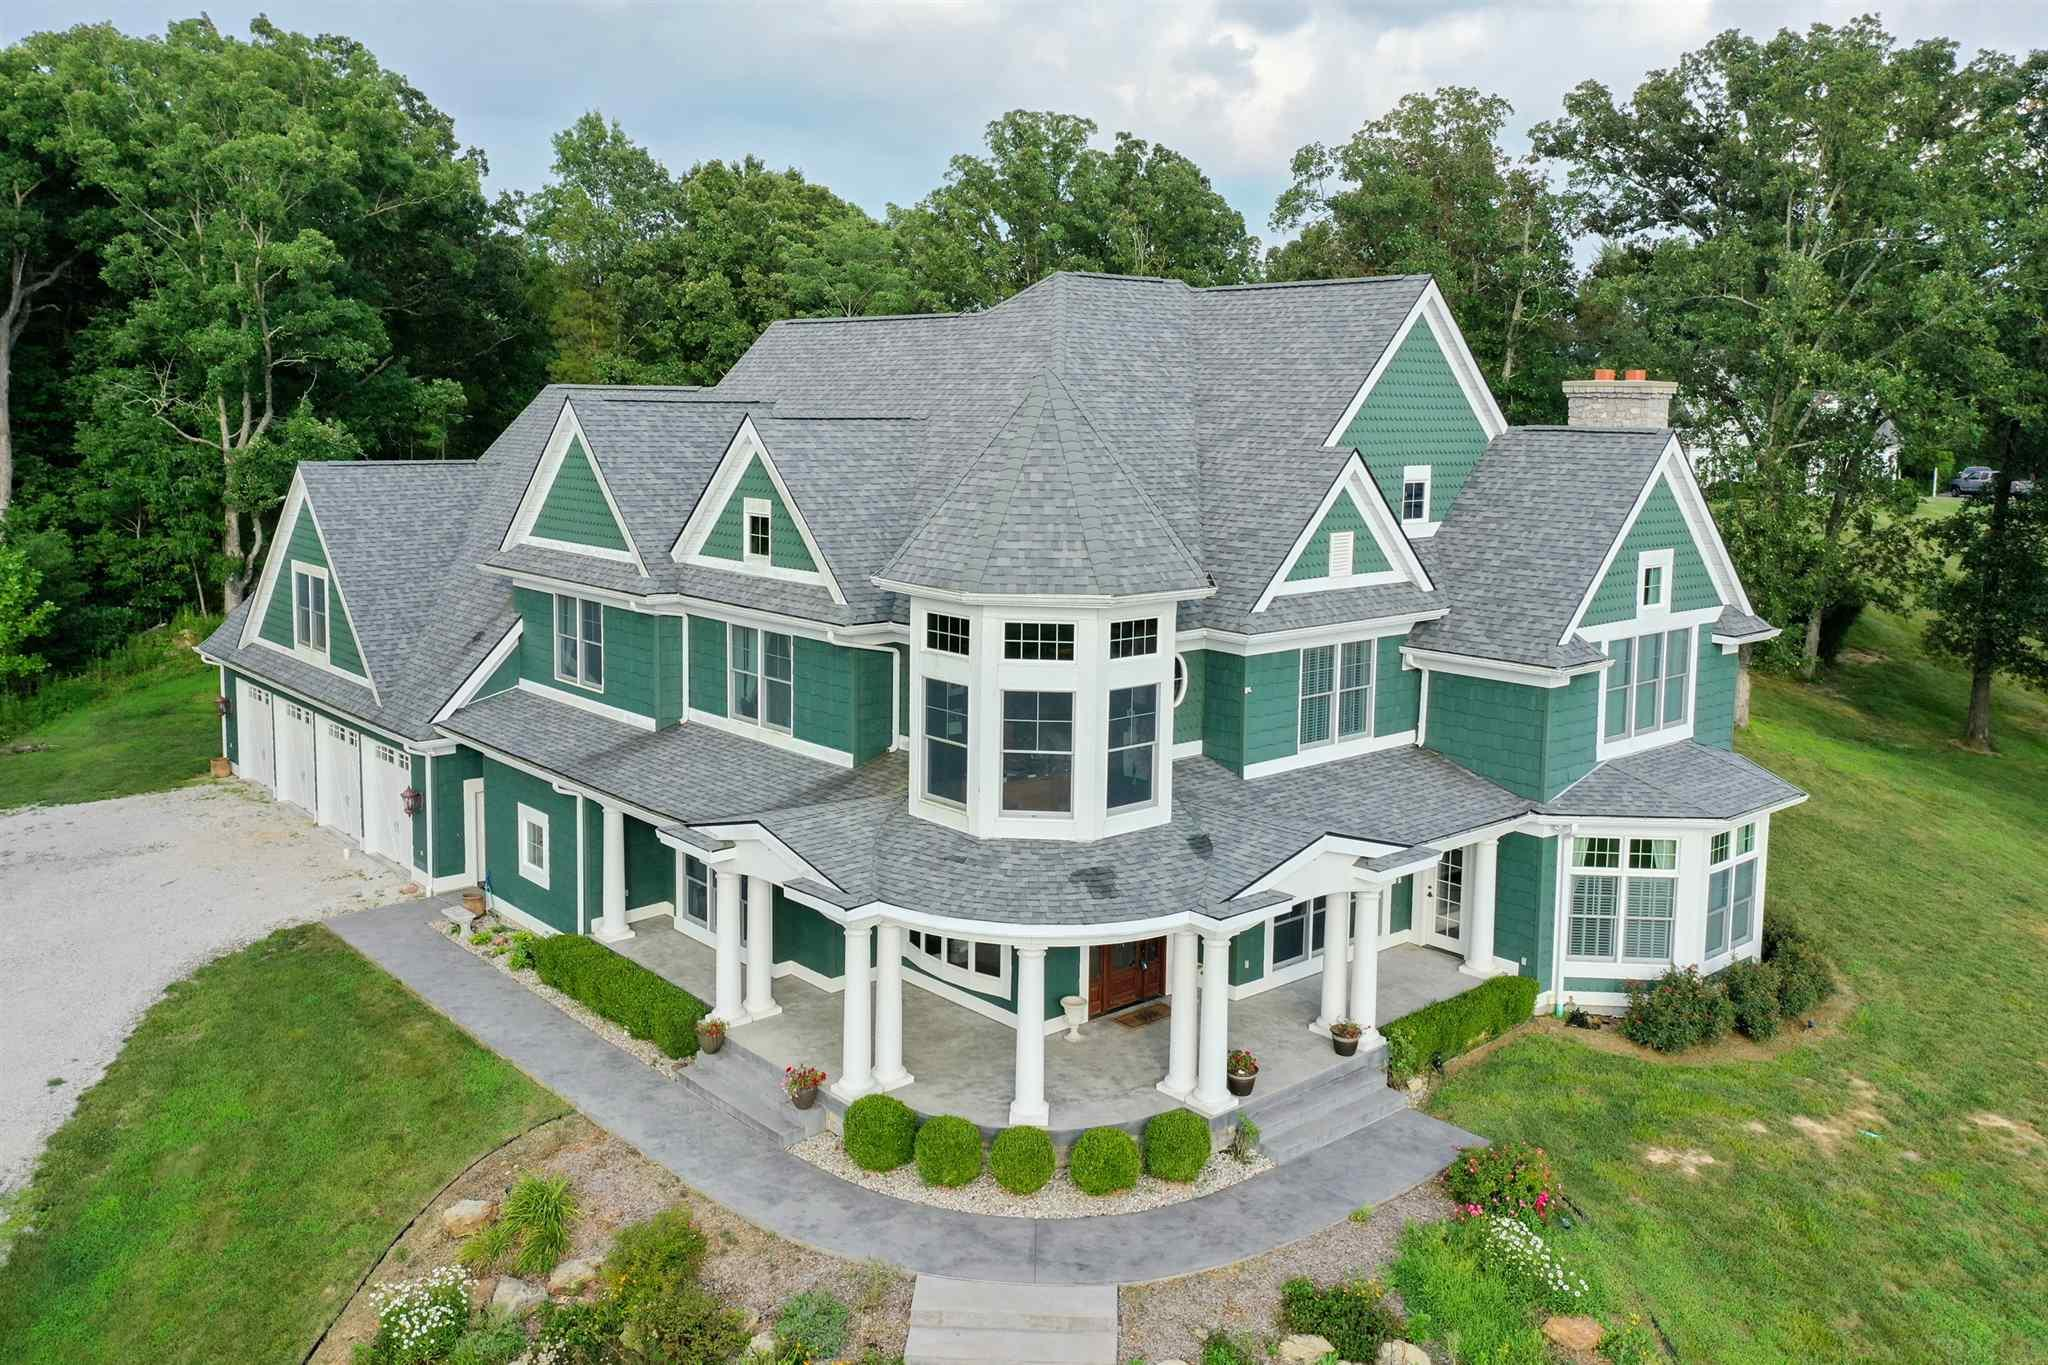 """The Finest of Everything! Gorgeous New England style with European flair and elegant interior, built around rotunda in center of home.  Amazing lake front views and private boat dock. Just to mention a few things...Home built using ICF Construction; 65' long garage with 4 car bays and 5th door for mowers; Floors made of Travertine, Marble and 3/4"""" solid Black Walnut; 2 wood burning fireplaces (plumbed for gas) with hand carved marble mantles; GeoThermal HVAC; Amish built Oak curved staircase in rotunda with marble columns; Kitchen with top of line Mastercraft cabinetry, Granite countertops, Travertine backsplash, 2 copper sinks, 6 burner gas cook top, 2 wine coolers, double ovens, walk in pantry; Laundry on main level and upstairs; Enormous bonus room/Man Cave; Large windows, high ceilings, amazing views!"""